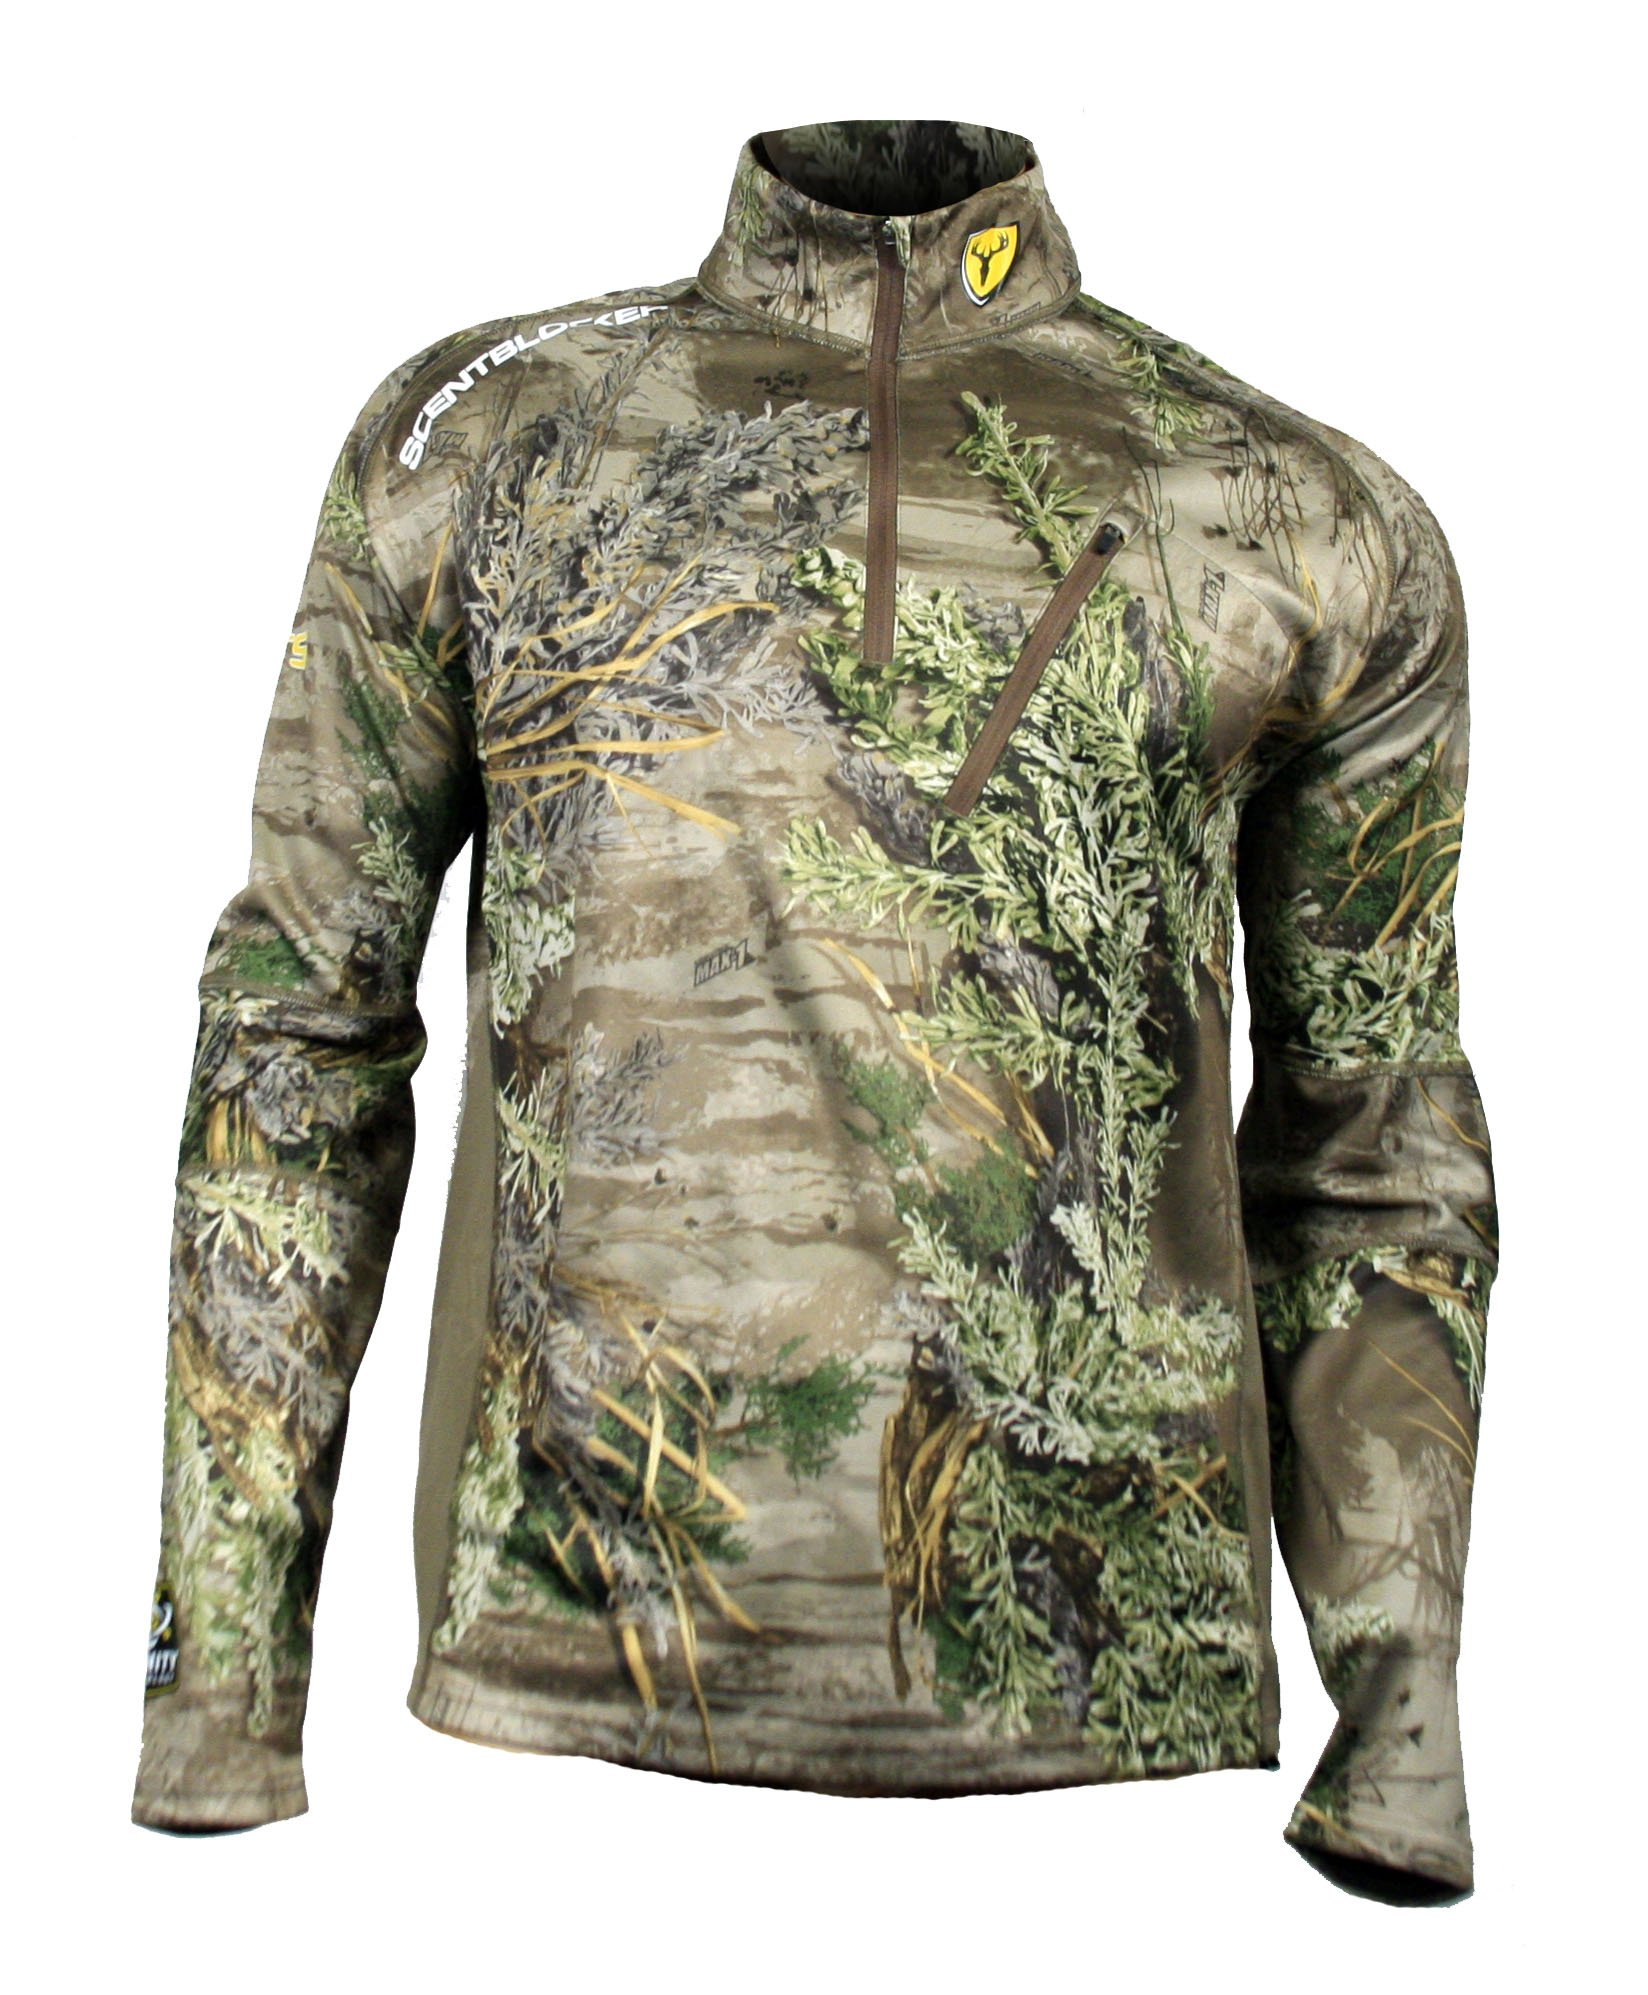 Scent Blocker NTS Long Sleeve Shirt, Camo, 2X-Large